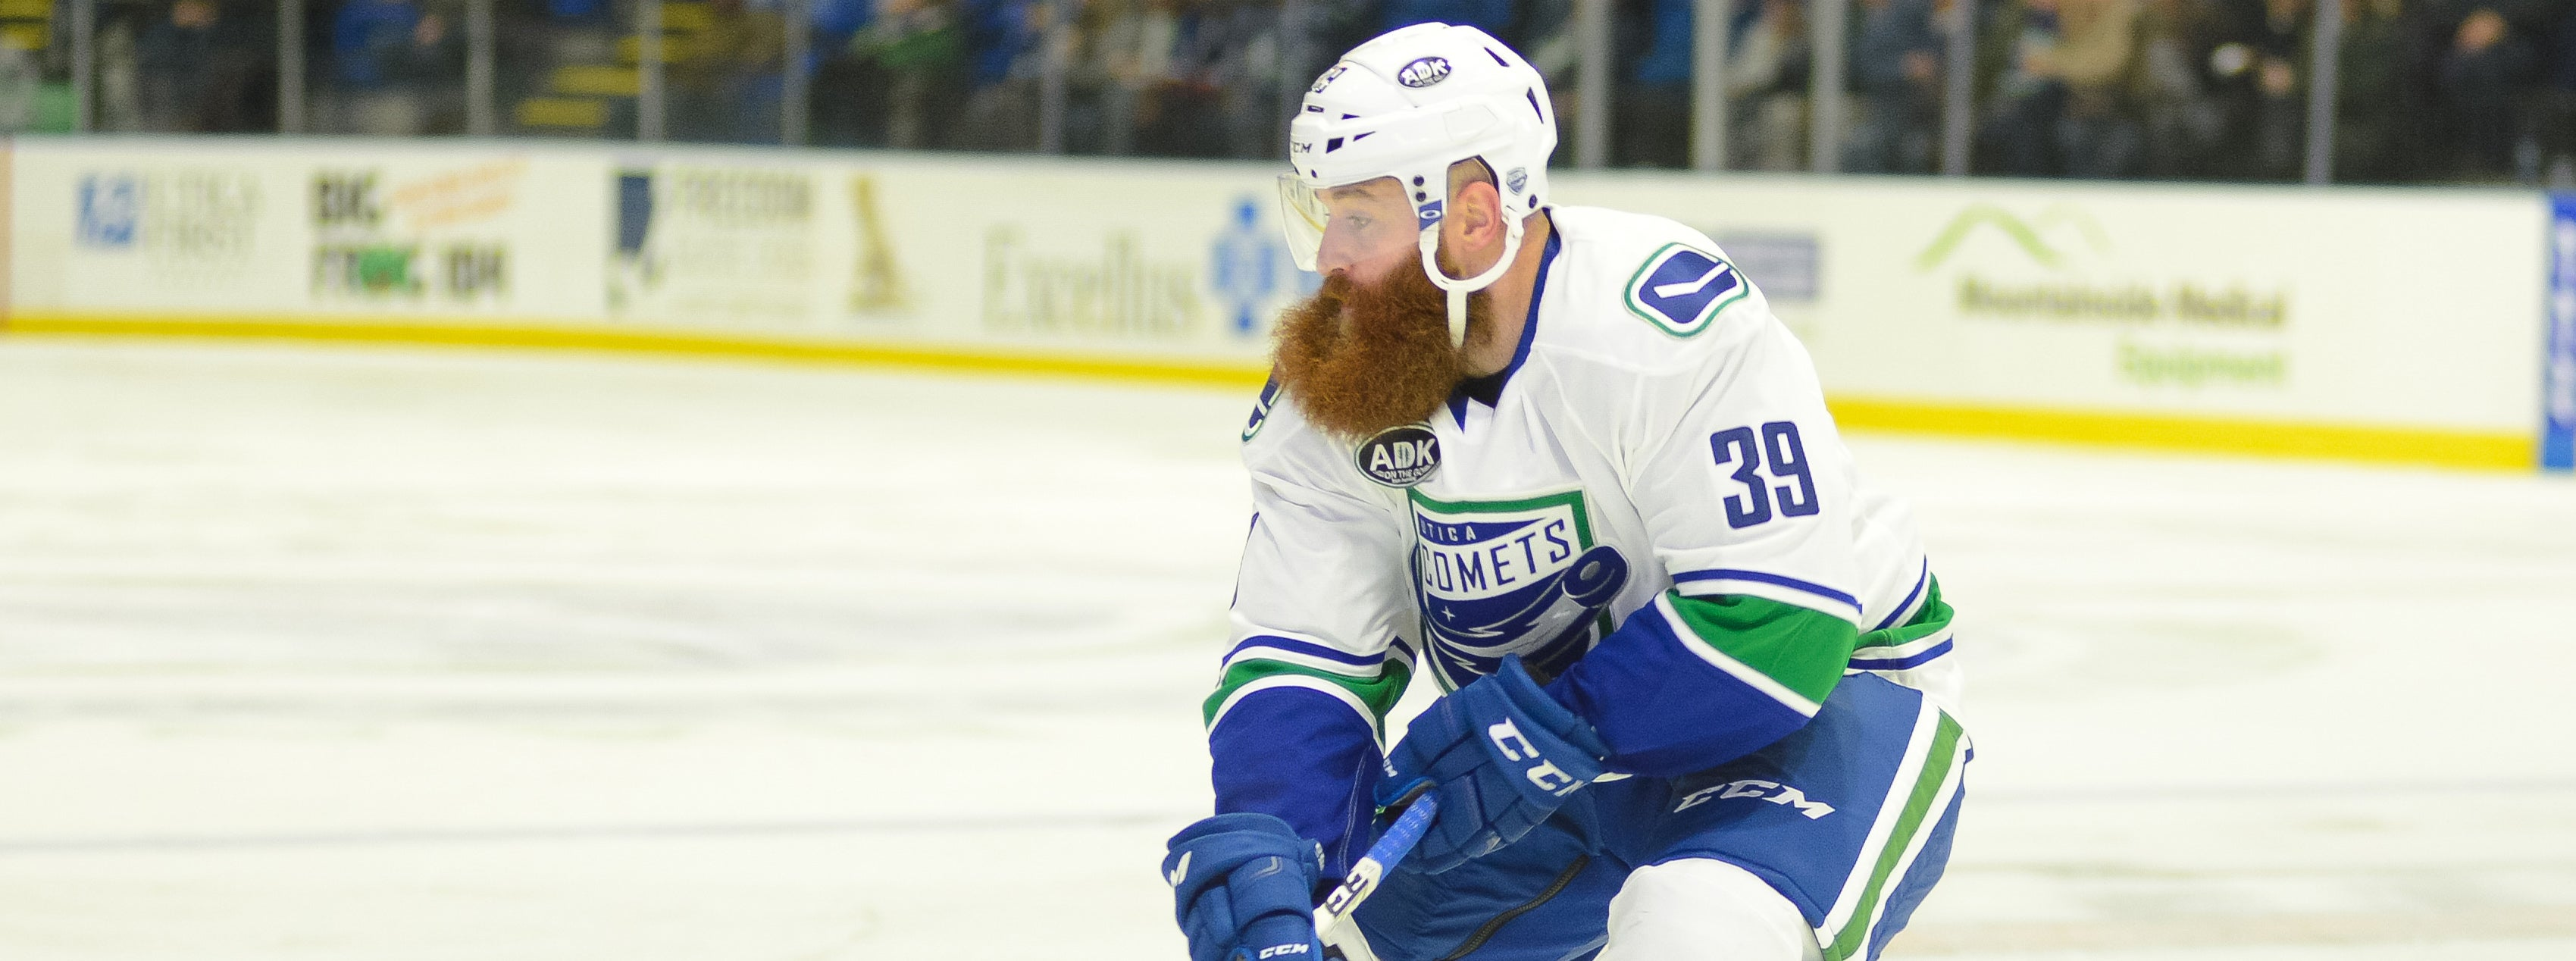 COMETS CONTINUE ROAD TRIP IN PROVIDENCE